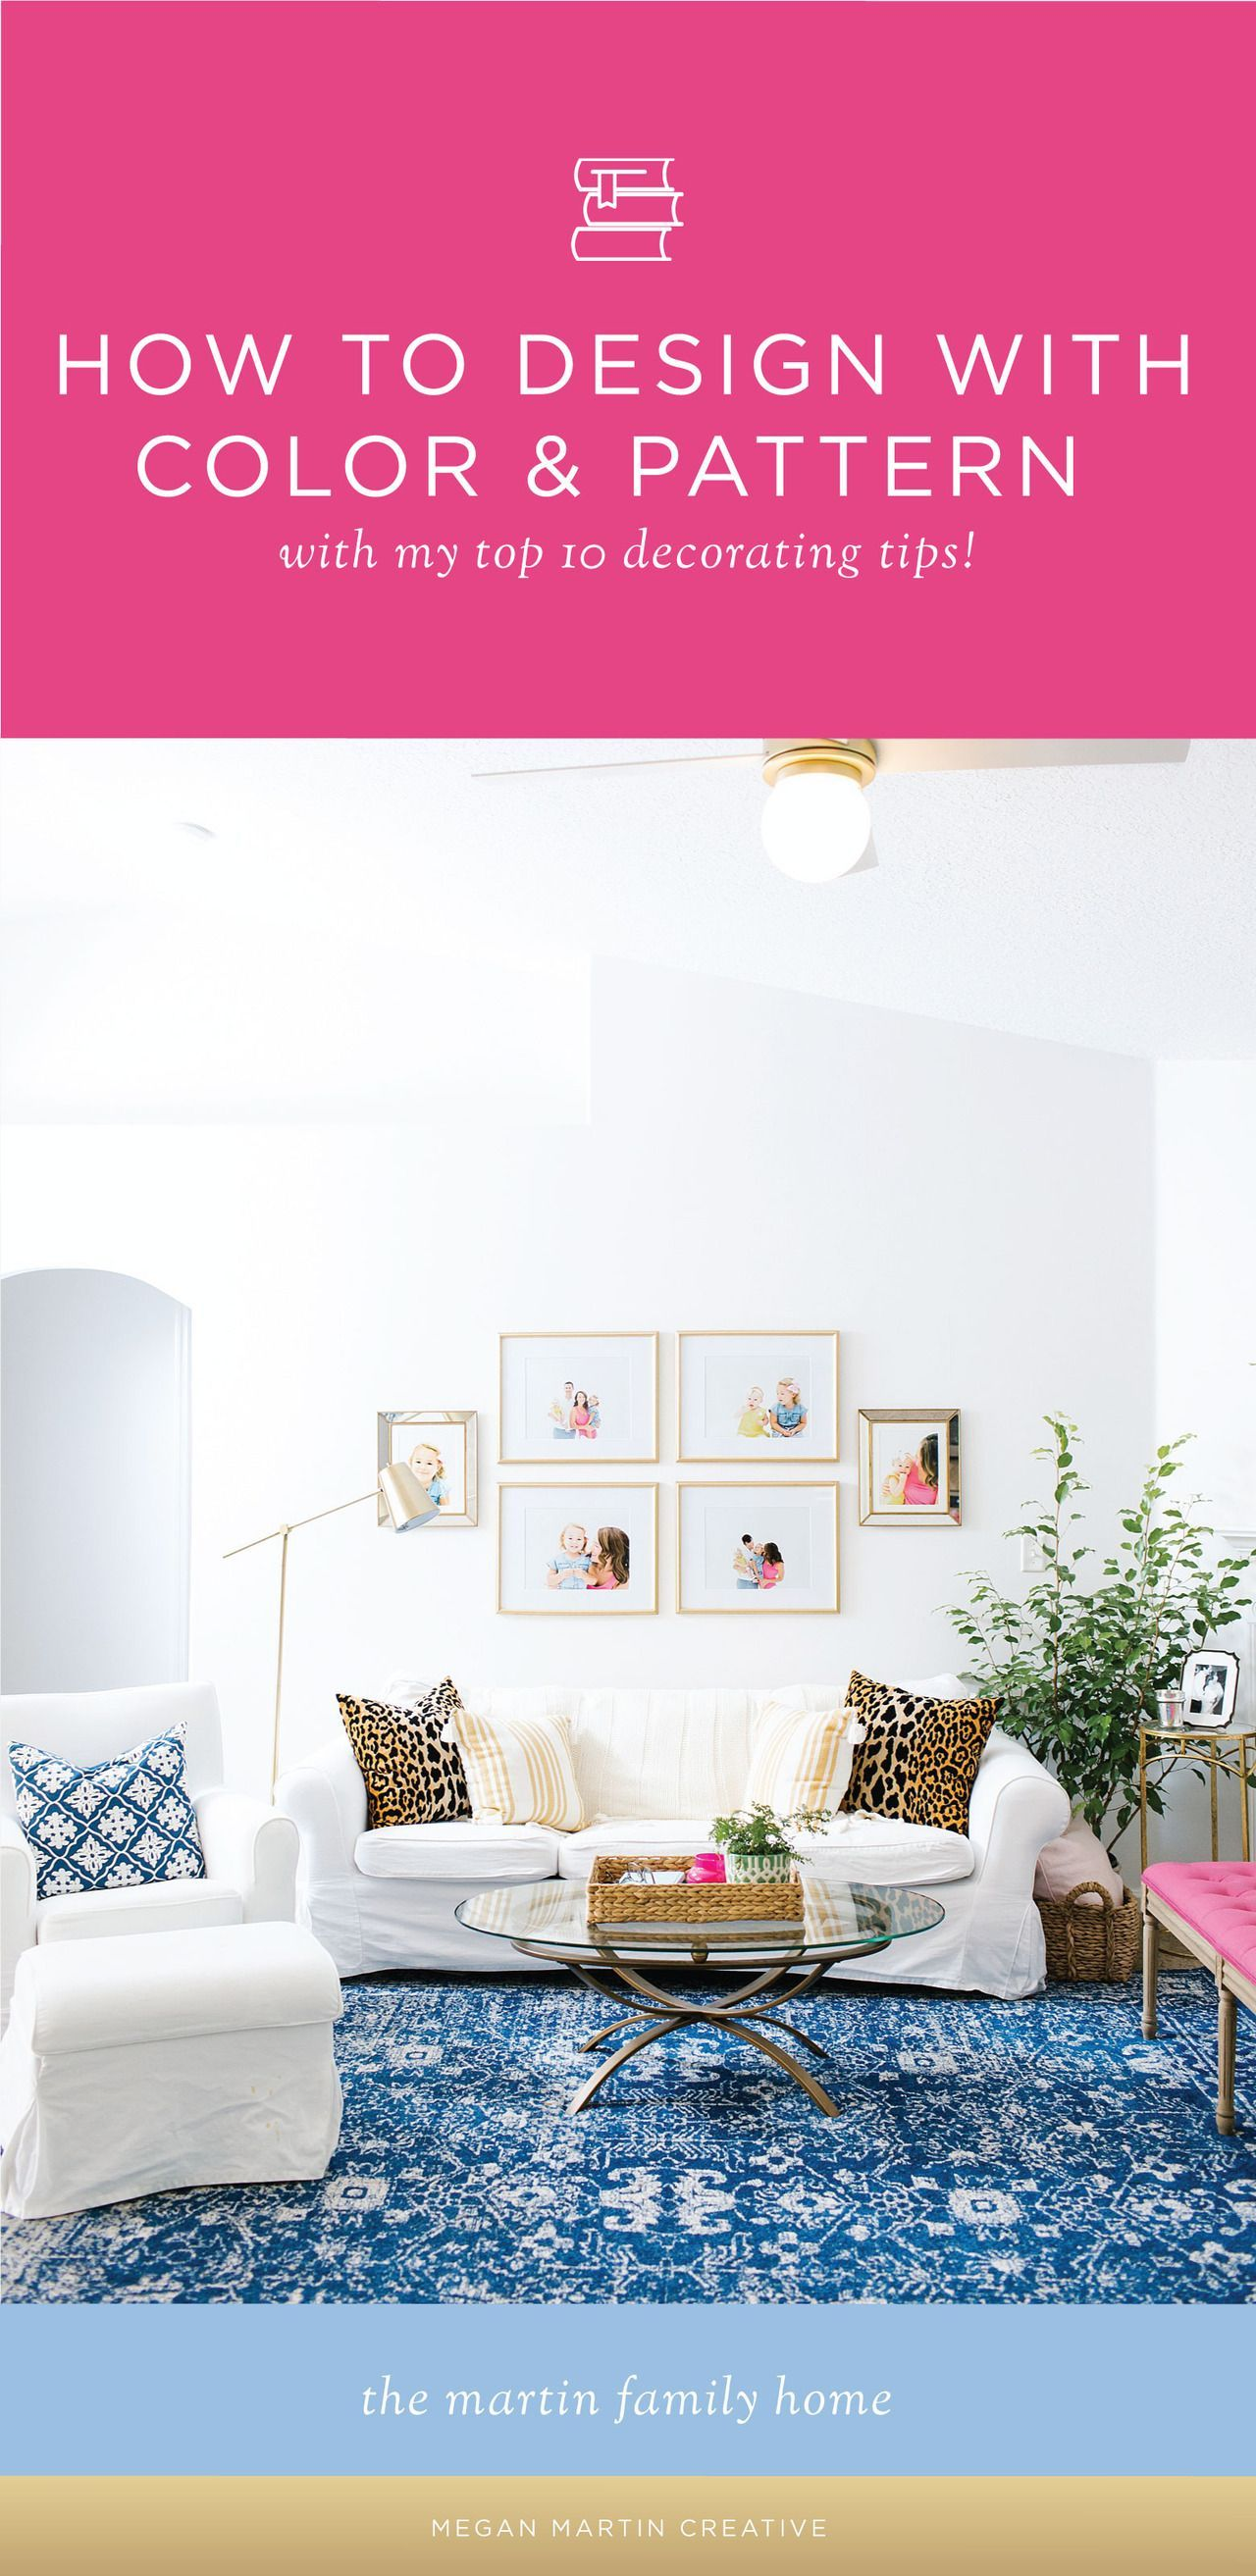 10 Designer Tips for Decorating with Color and Pattern in your Home ...